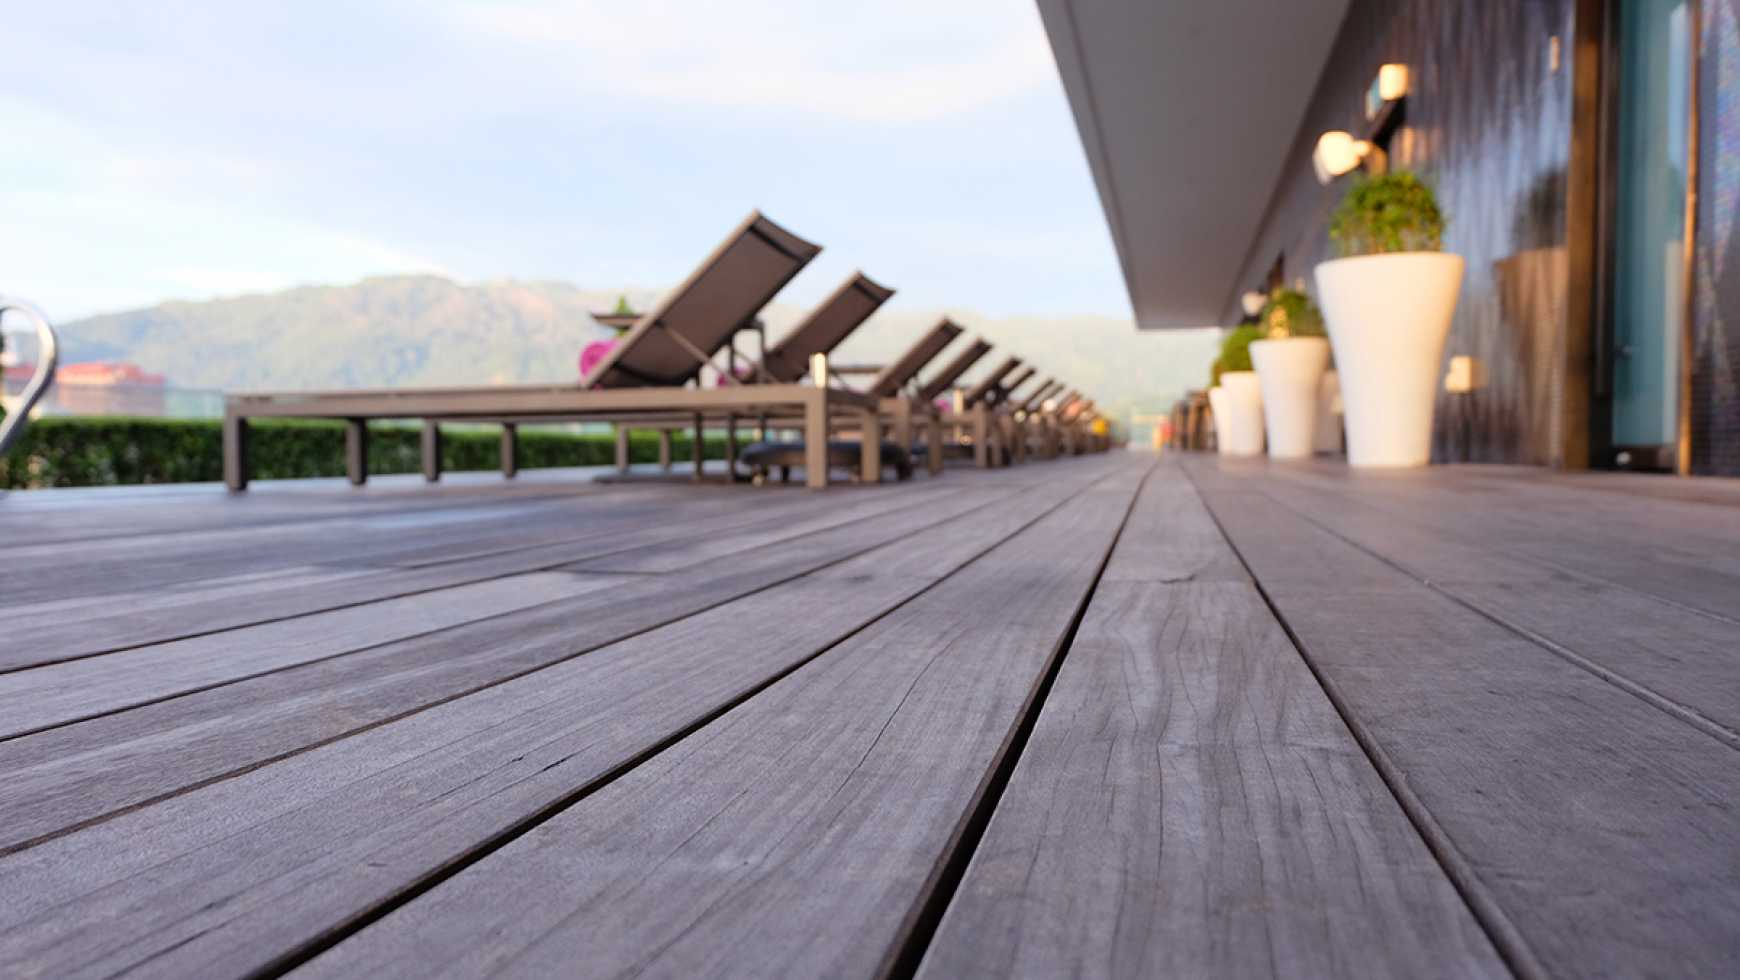 Roof Decks on Flat Roofs: Benefits and Considerations